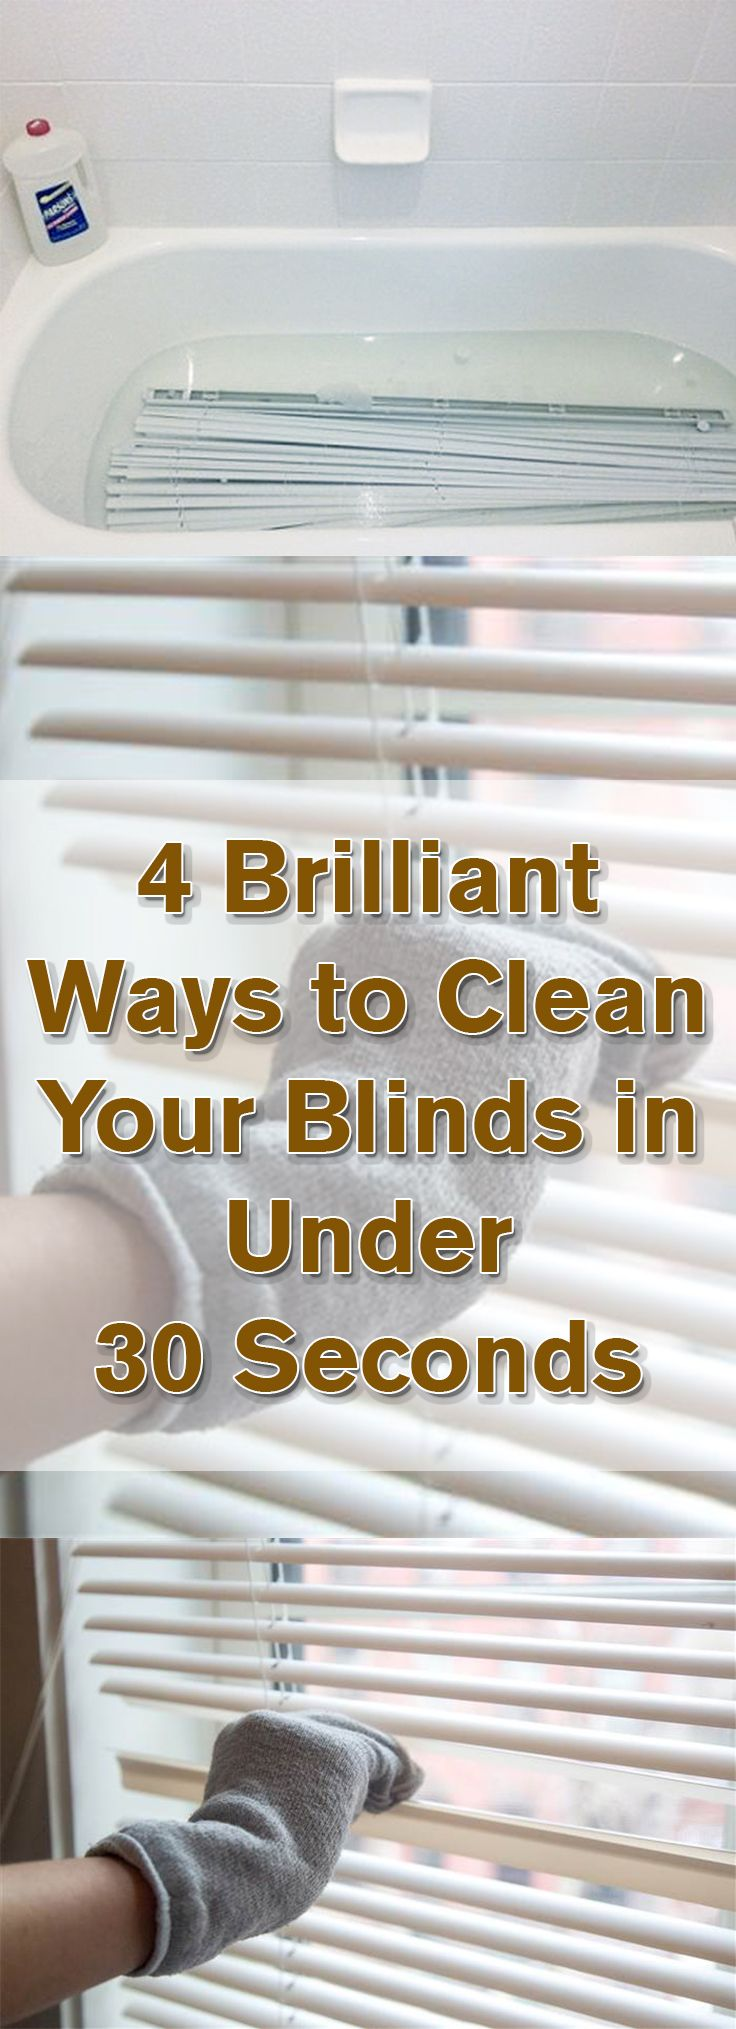 Brilliant Ways To Clean Your Blinds In Under Seconds - 30 brilliant life hacks